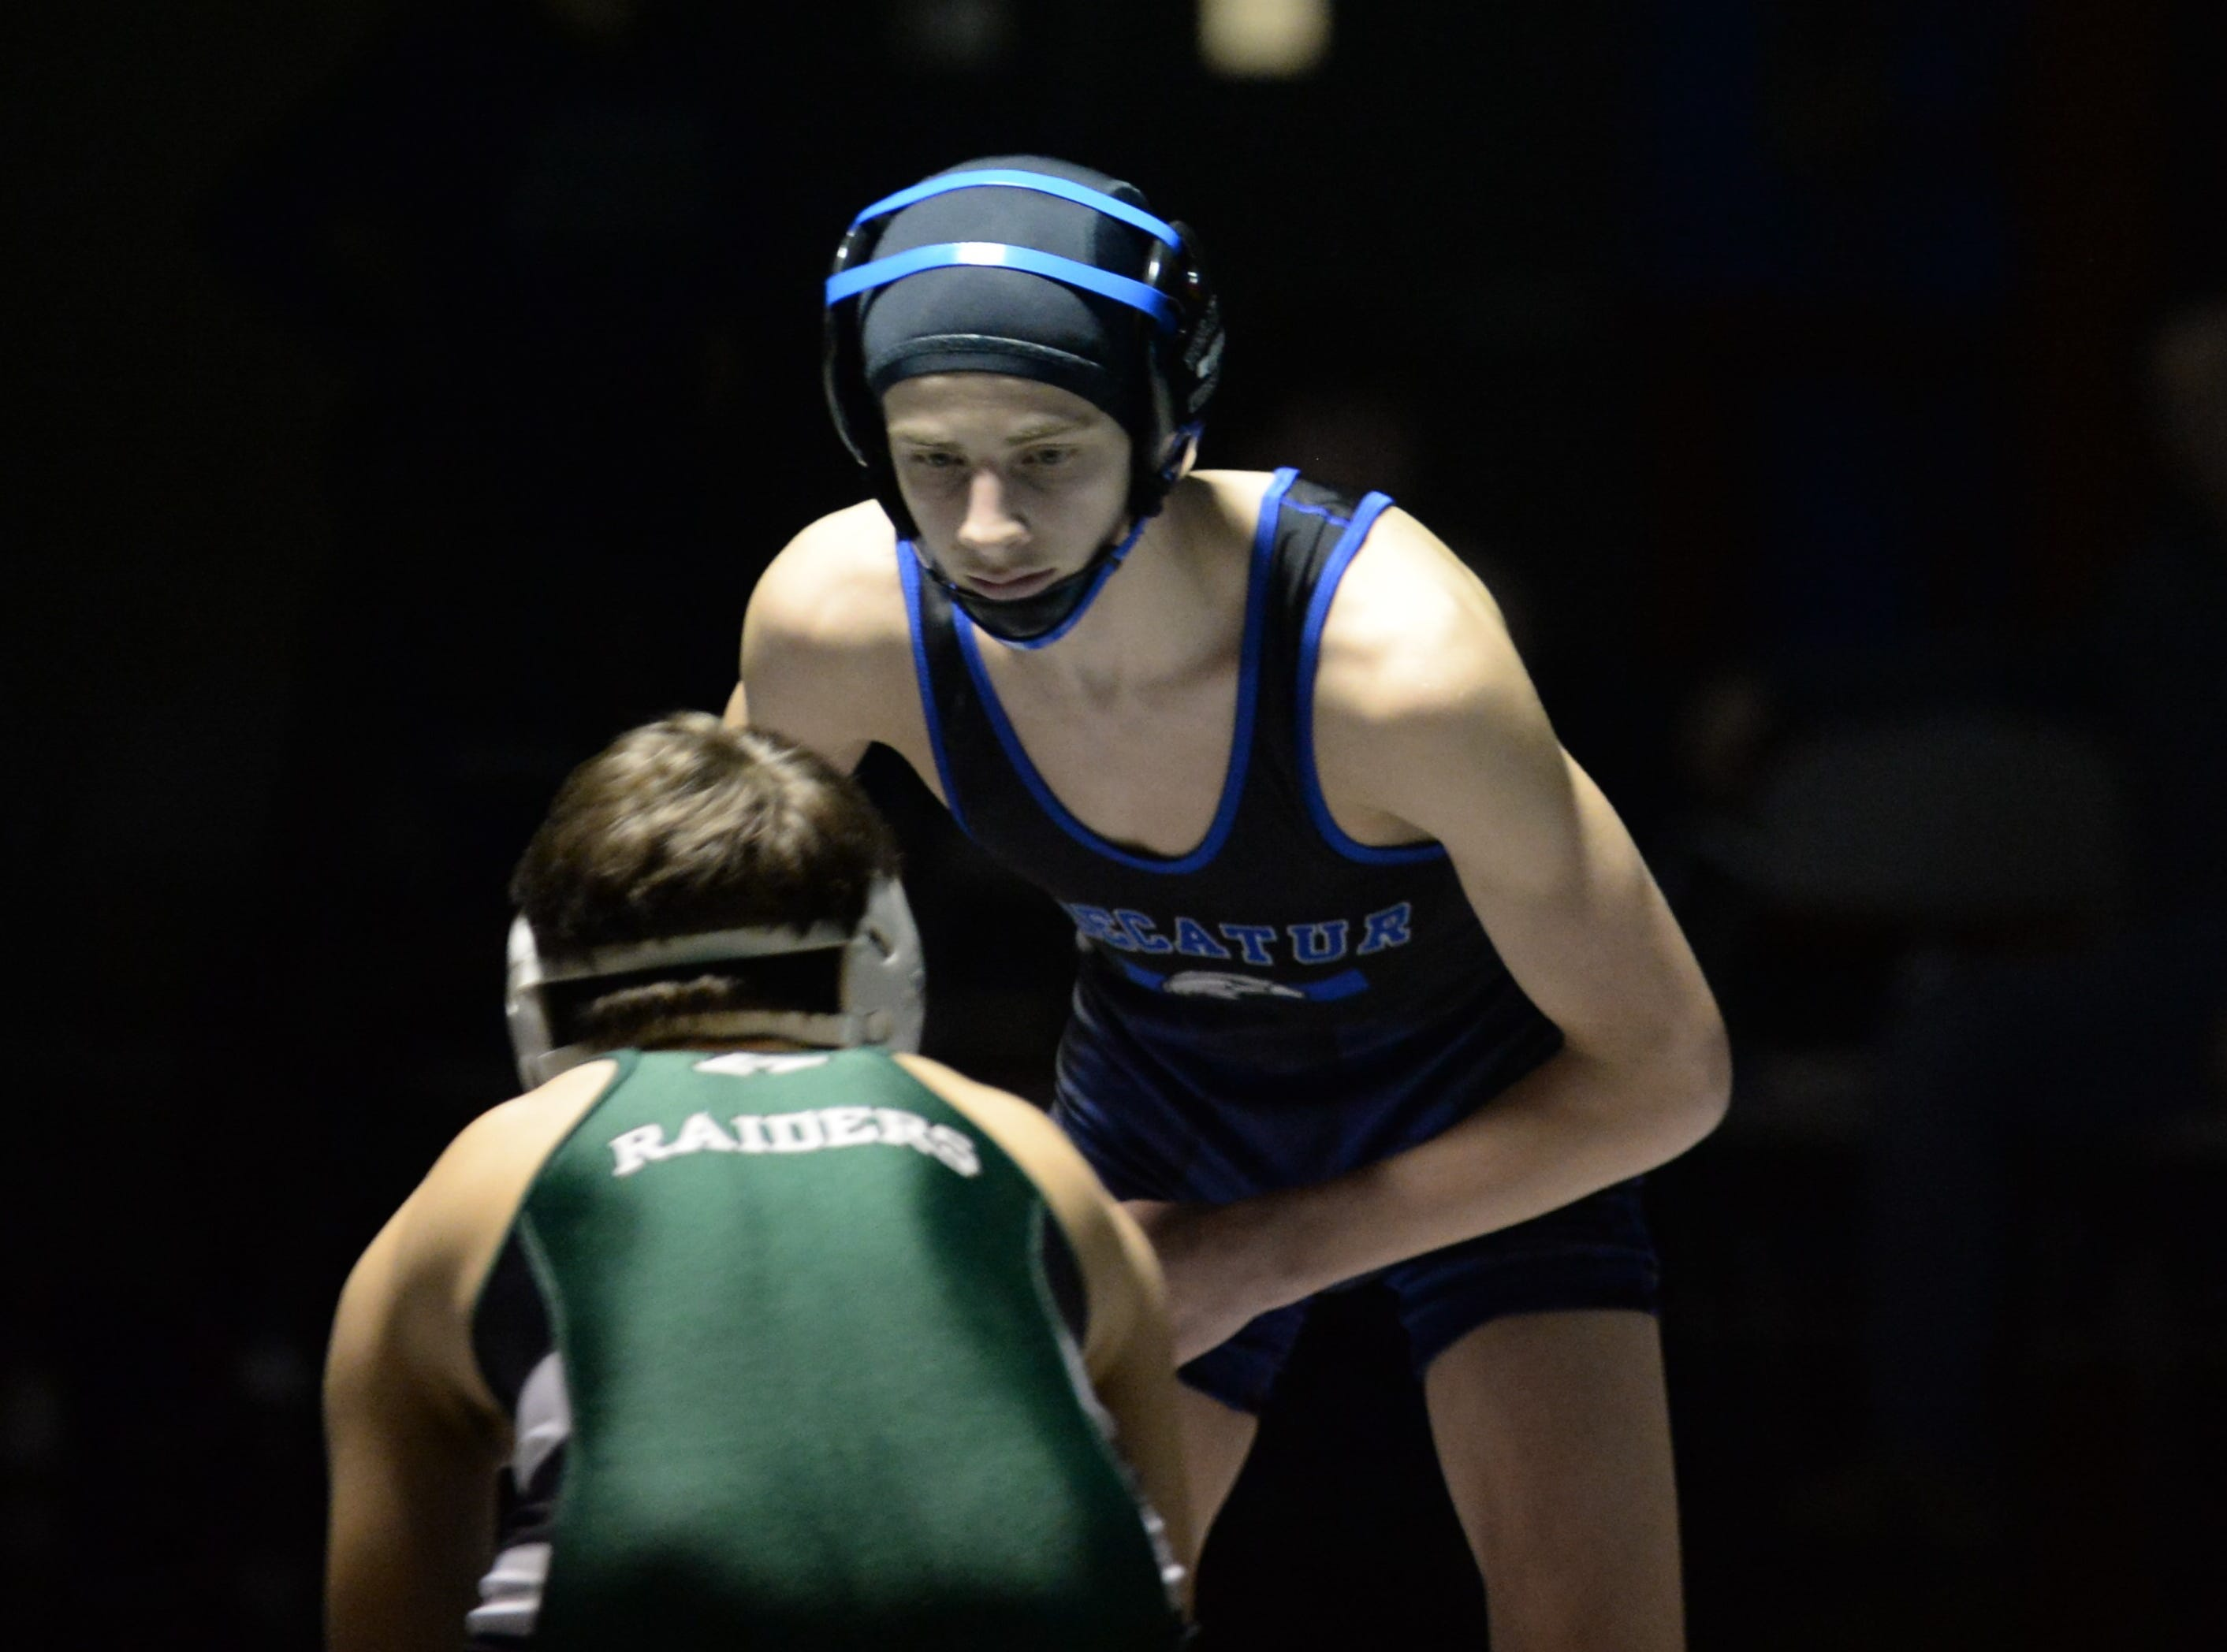 Stephen Decatur's Nico D'Amico stares down his opponent during the 3A East Regional Championship on Wednesday, Feb. 6, 2019.